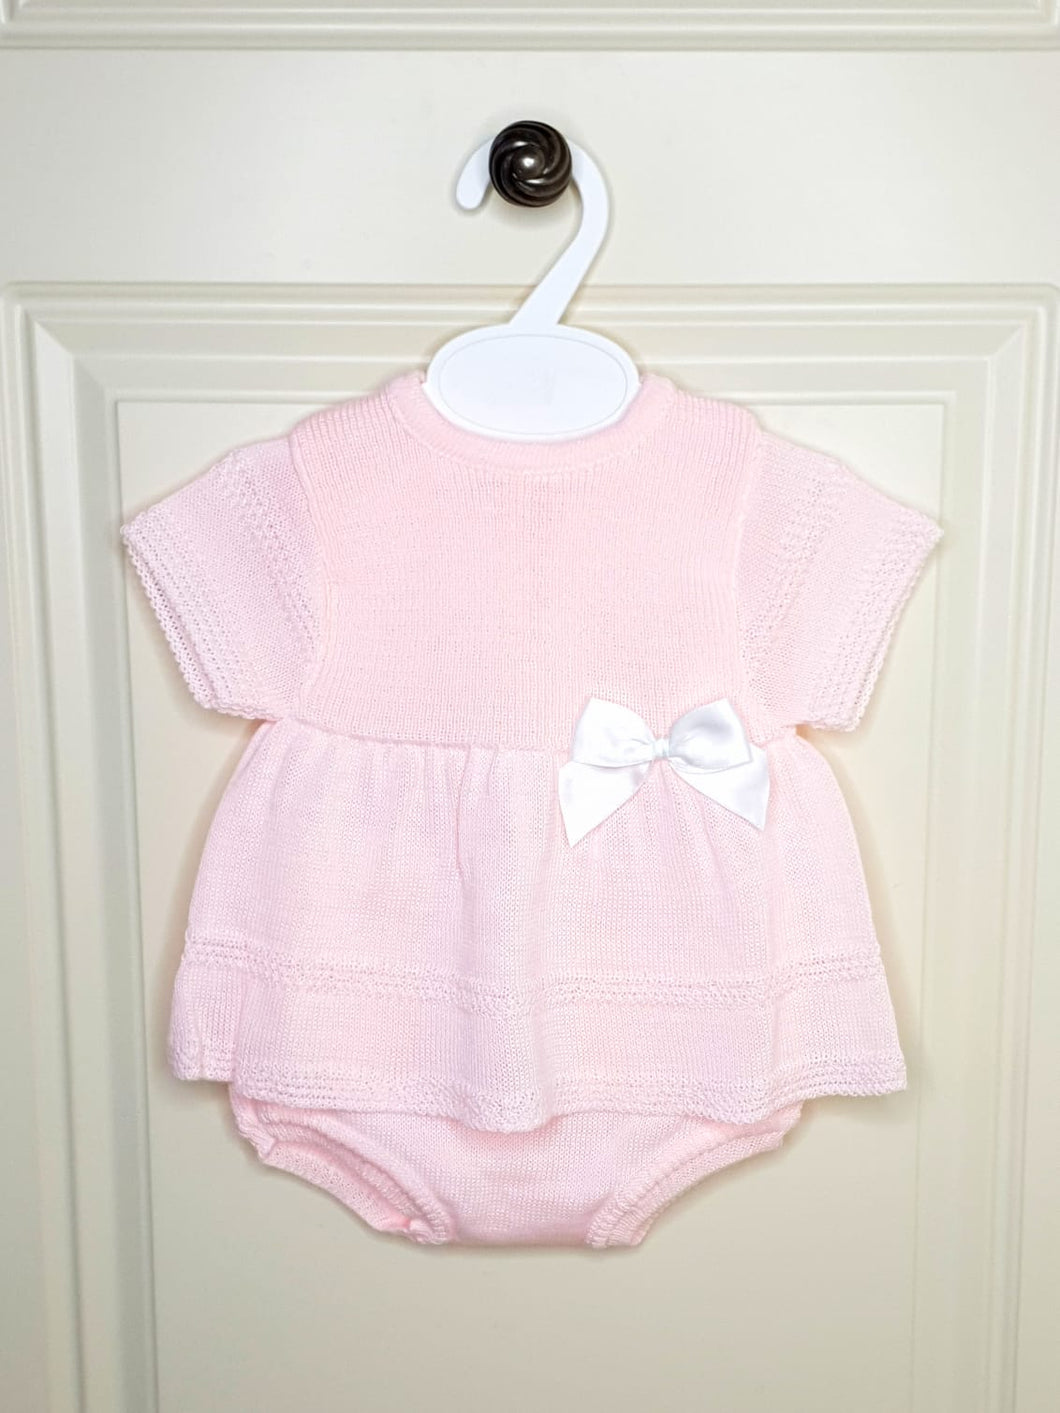 Girls Pink Knit Outfit with Bow